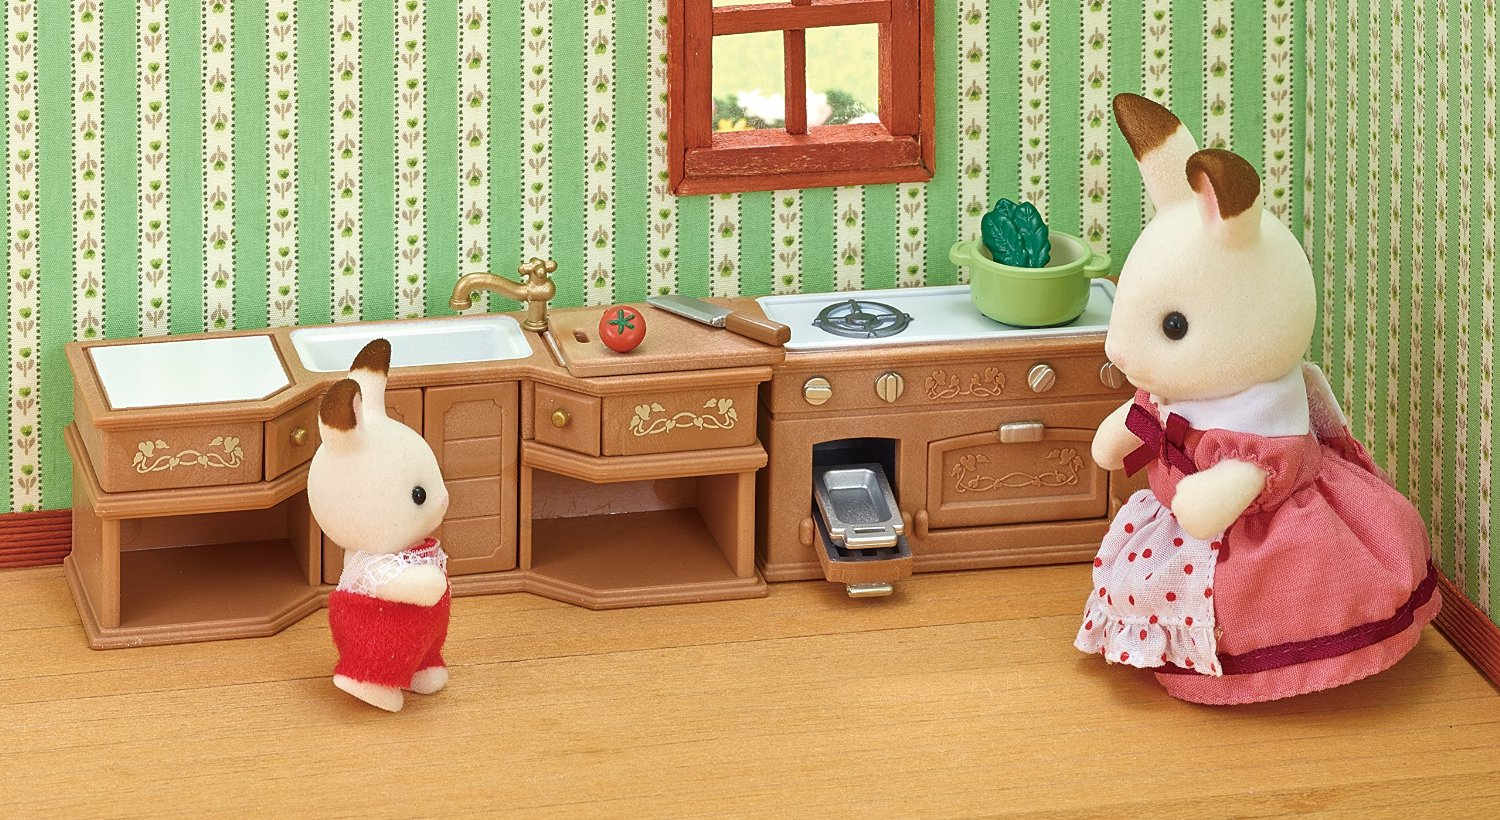 sylvanian families kitchen ebay sylvanian families living room set - Sylvanian Families Living Room Set